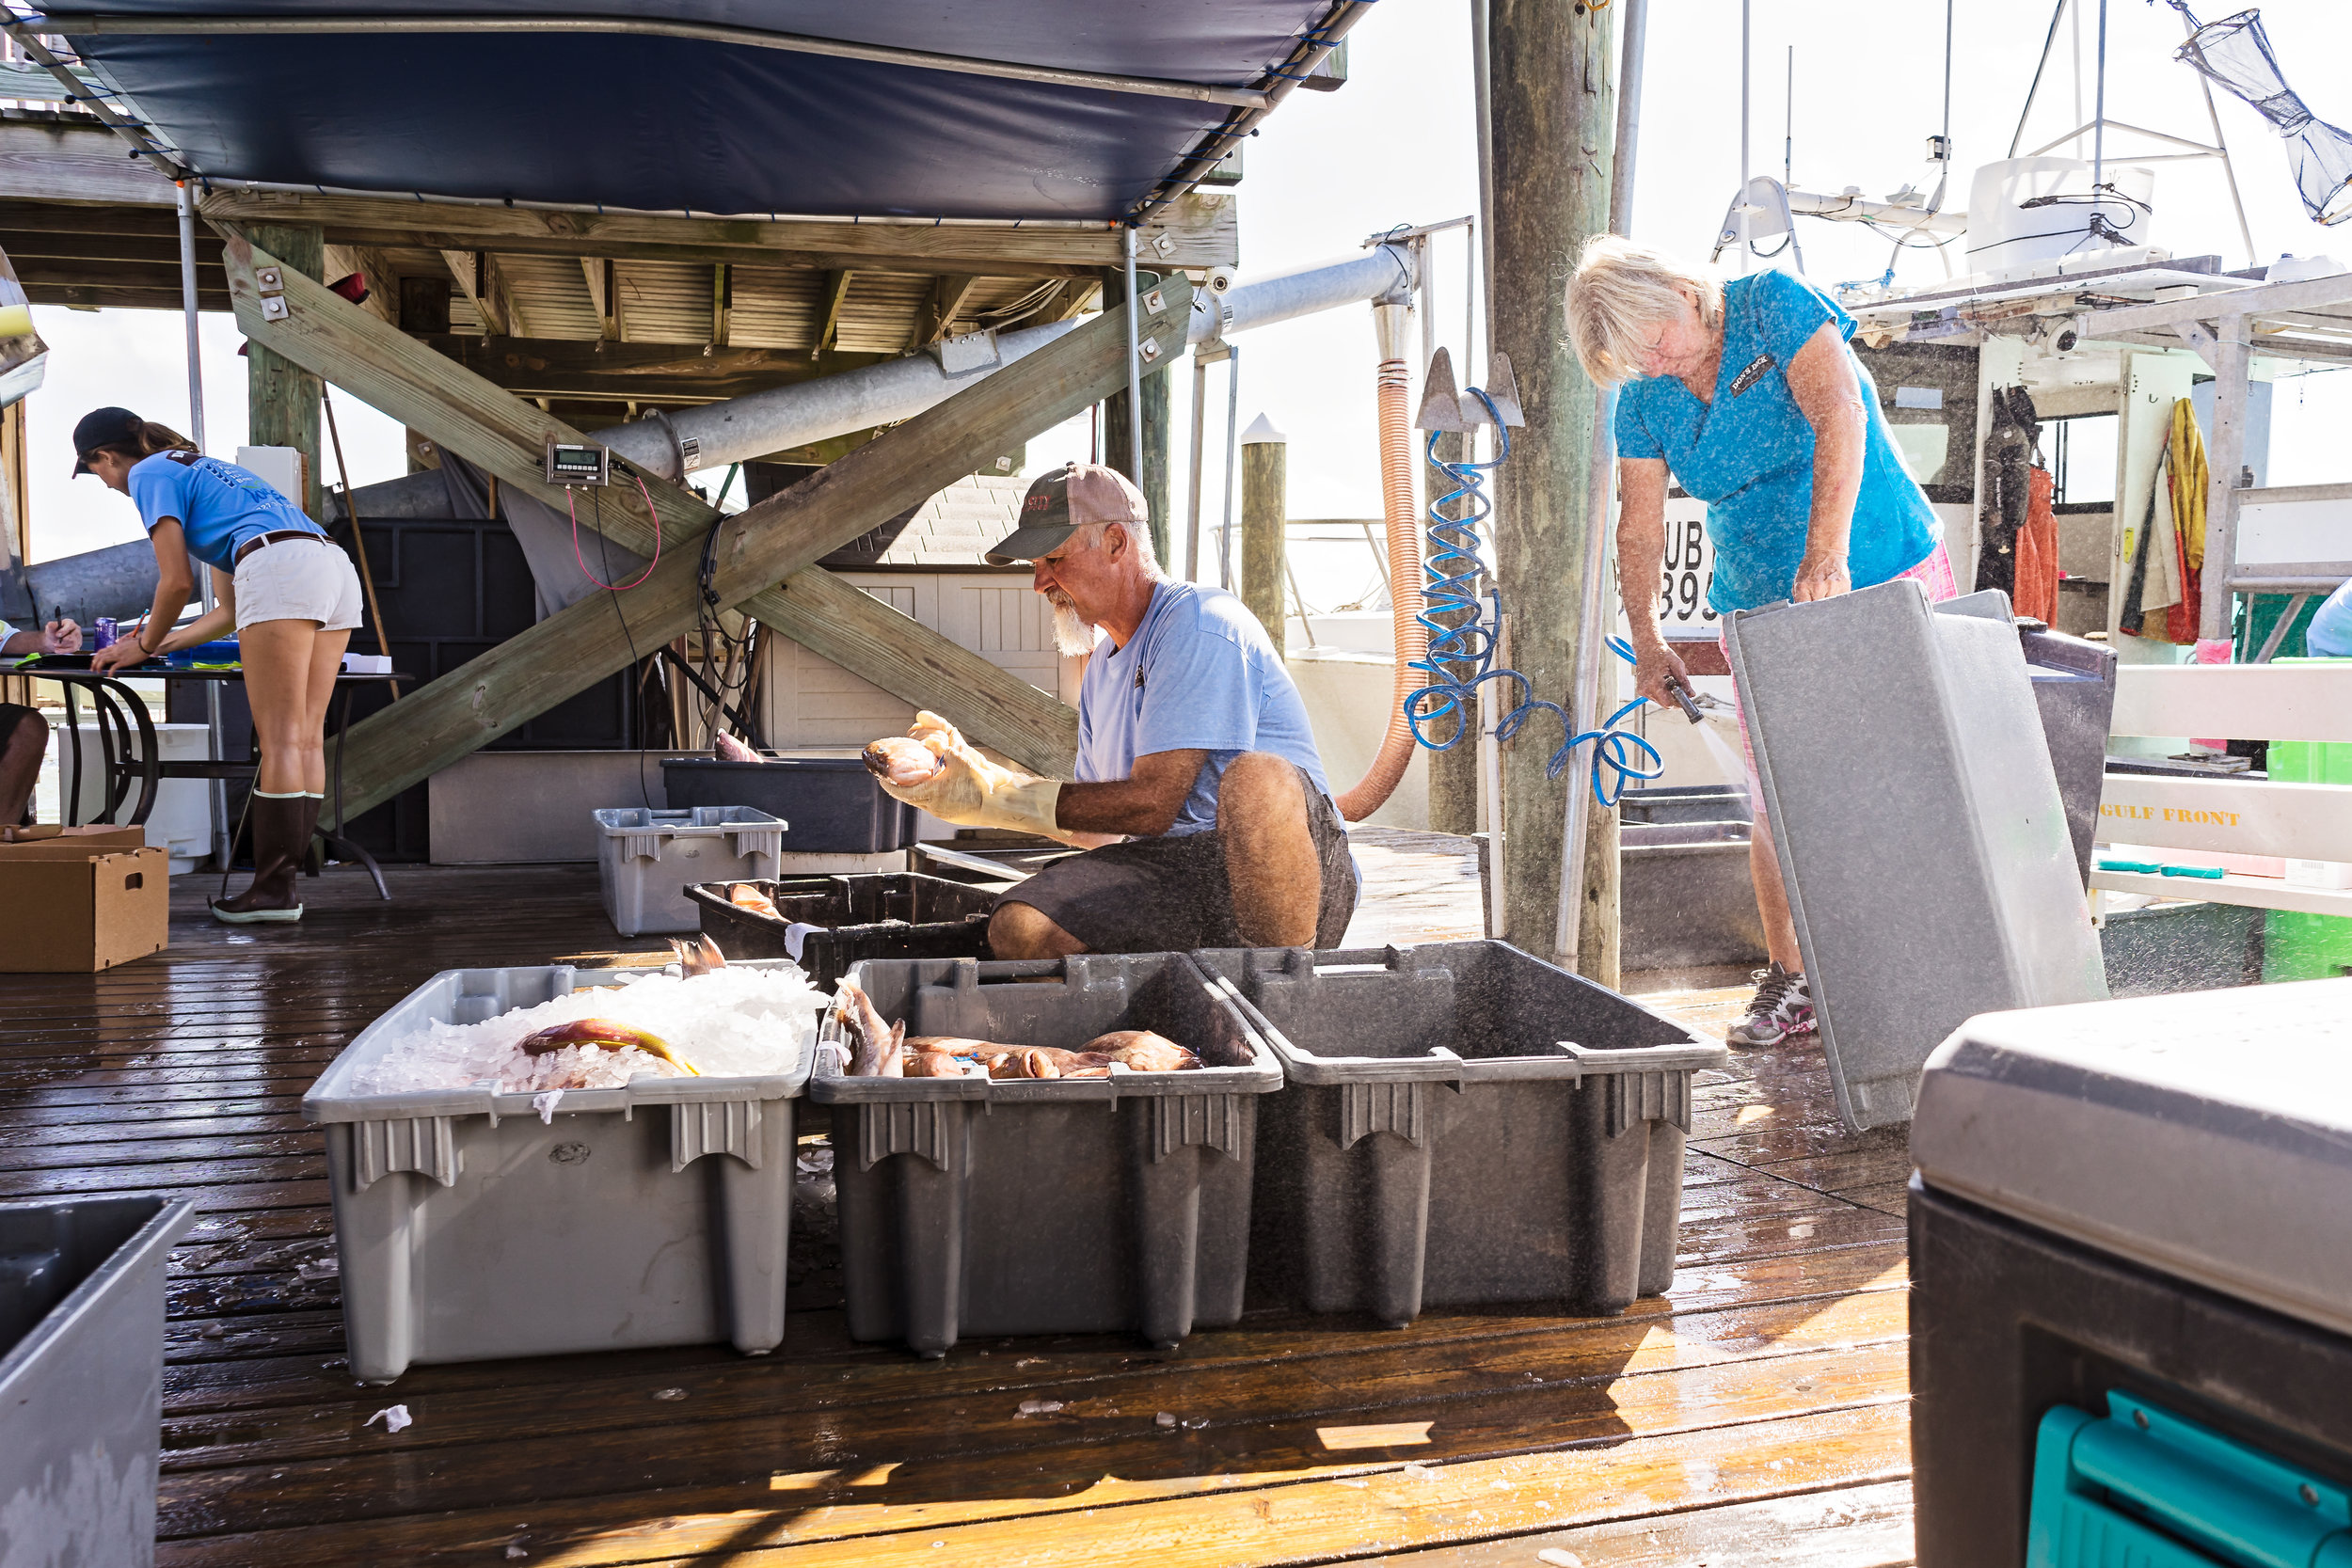 Rick Swagger sorting fish into bins while Toni Romero hoses out empty ones.